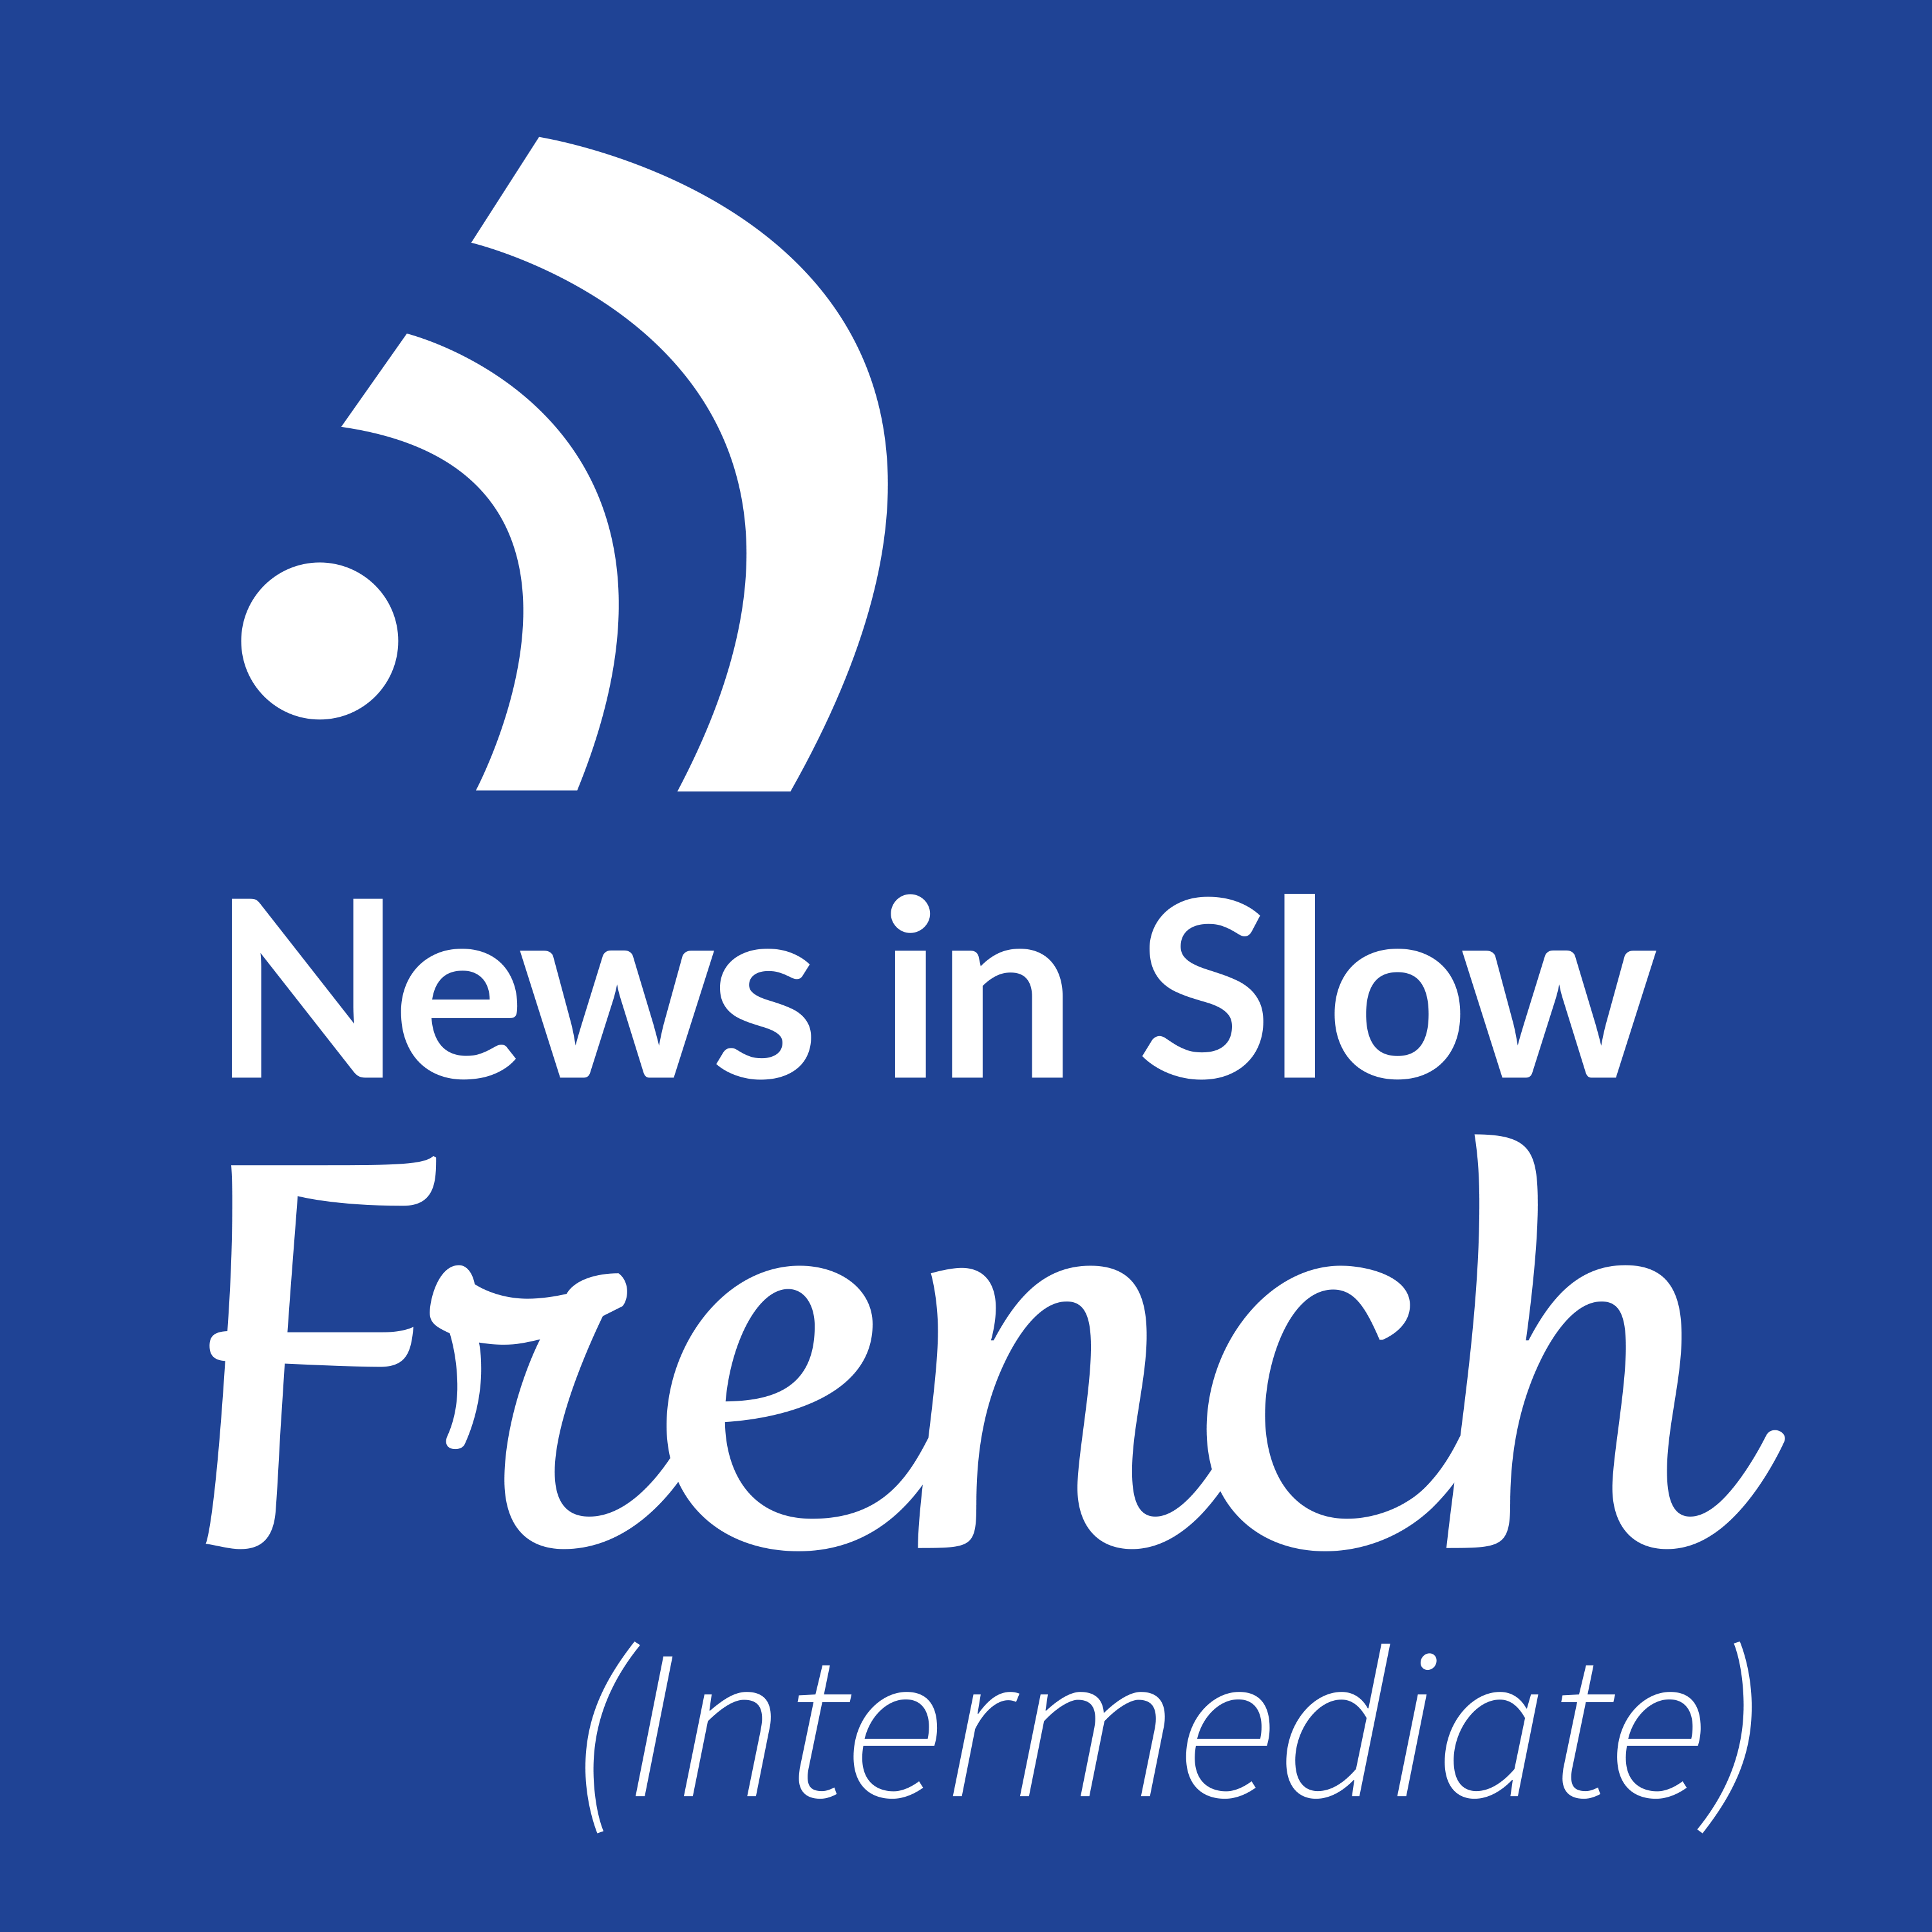 News in Slow French #305 - Learn French through current events